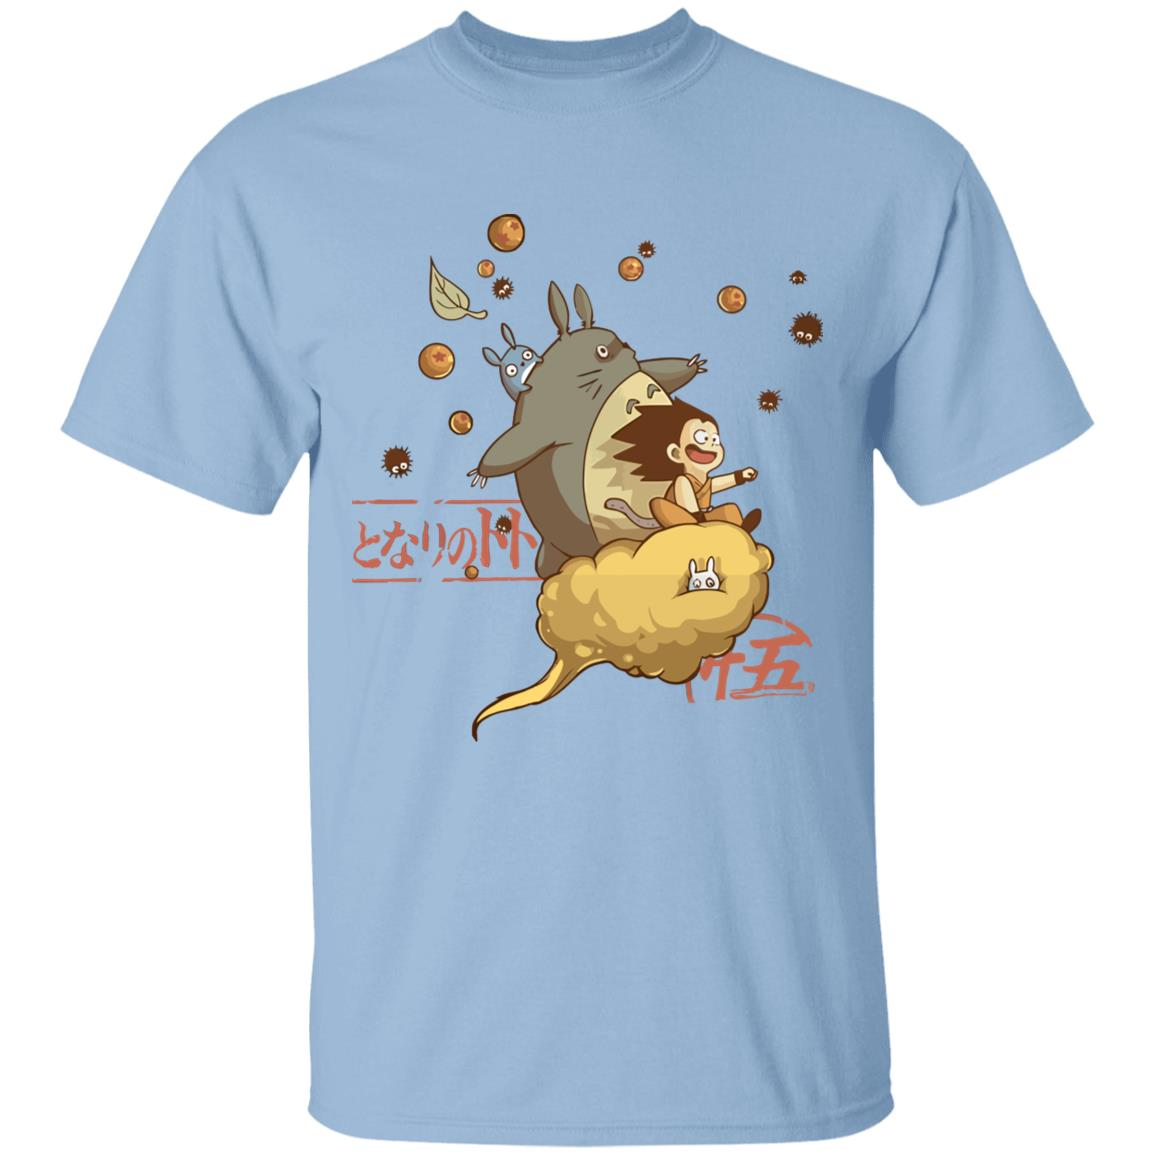 Totoro and Son Goku T Shirt